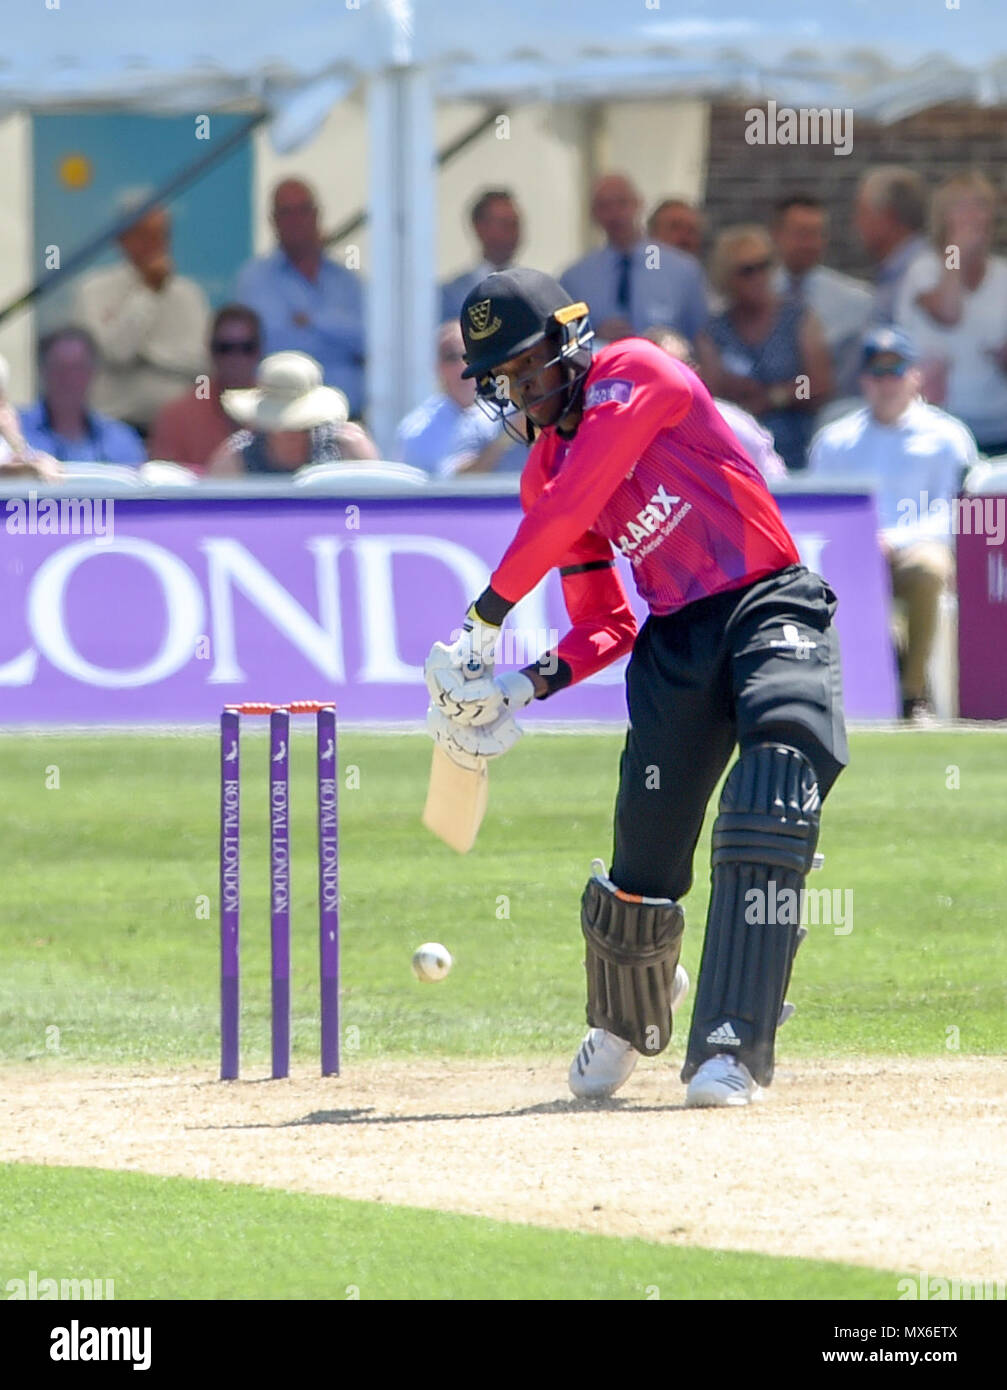 Eastbourne UK 3rd June 2018  - Jofra Archer batting for Sussex during the Royal London One Day cricket match between Sussex Sharks and Essex Eagles at The Saffrons ground in Eastbourne UK Photograph taken by Simon Dack Credit: Simon Dack/Alamy Live News Stock Photo